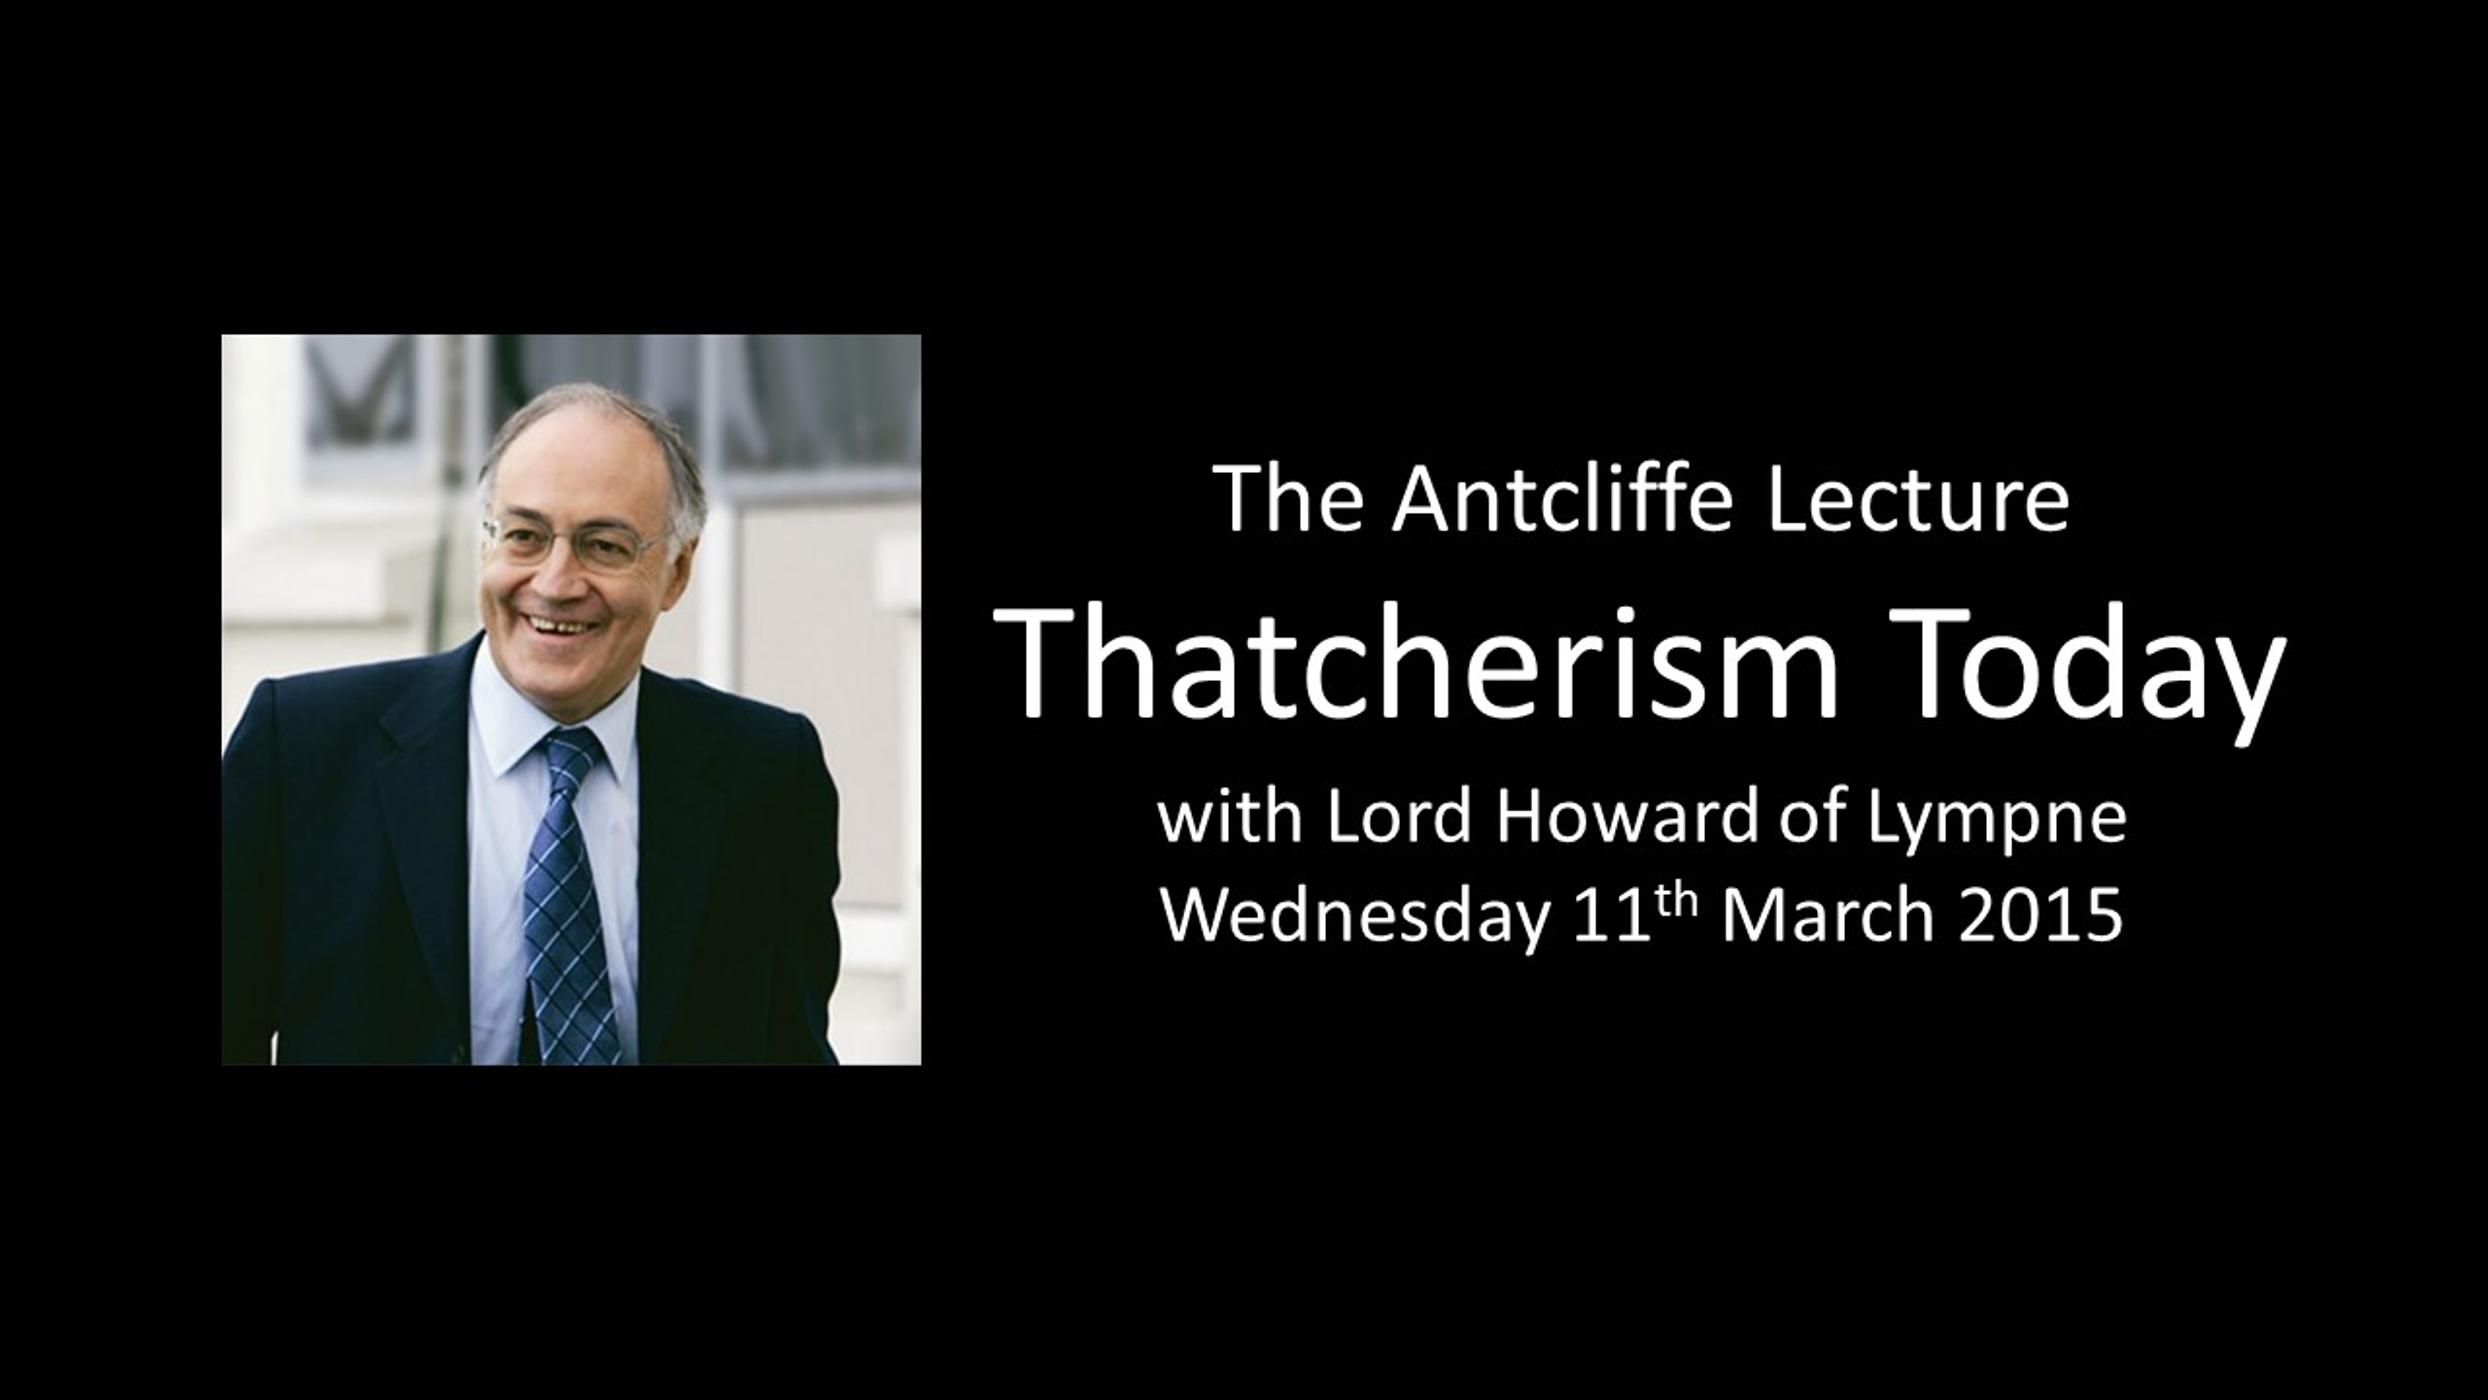 The Antcliffe Lecture: Thatcherism Today with Lord Howard (FULL LECTURE AND Q&A)